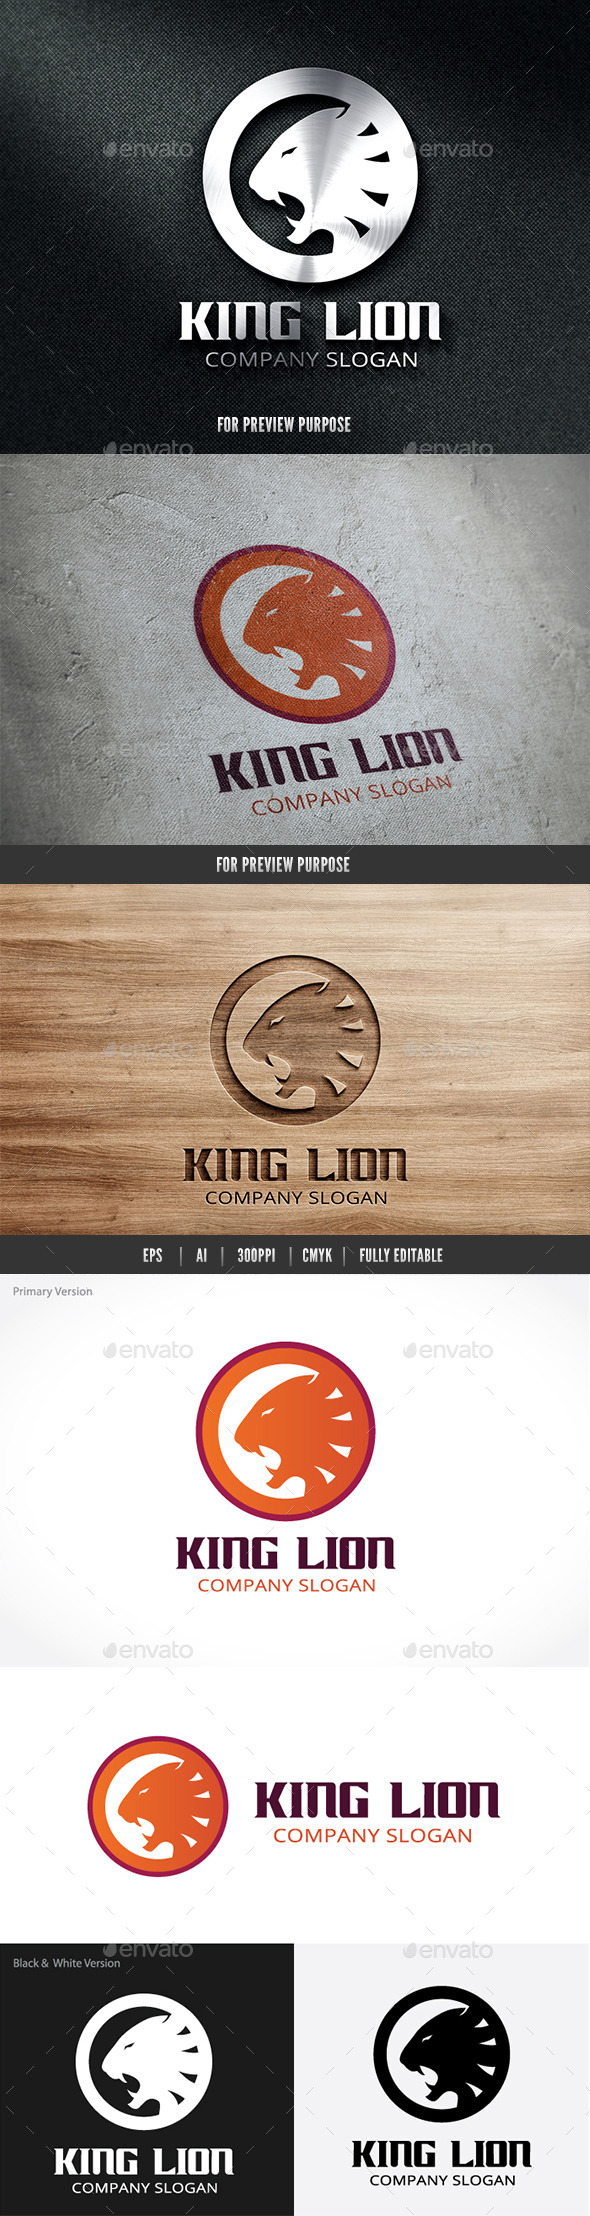 GraphicRiver King Lion 9376334